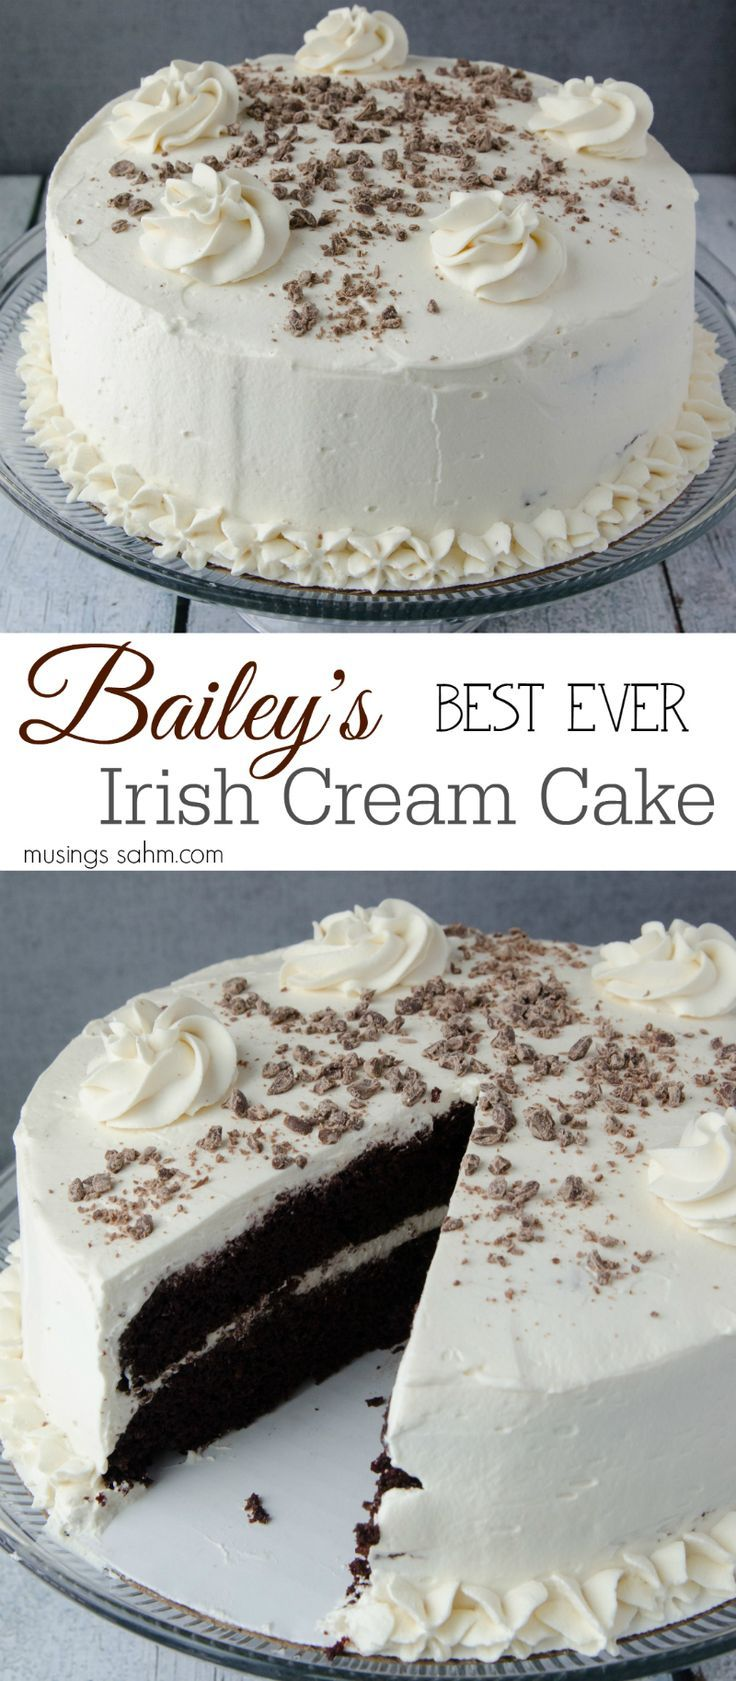 Bailey's Irish Cream Cake - The moist chocolate cake and flavorful real whipped cream frosting are so light, you'll have a hard time saying no to a second piece of this delicious chocolate cake! And of course, it includes real Bailey's Irish Cream, which gives the cake its perfect flavor.